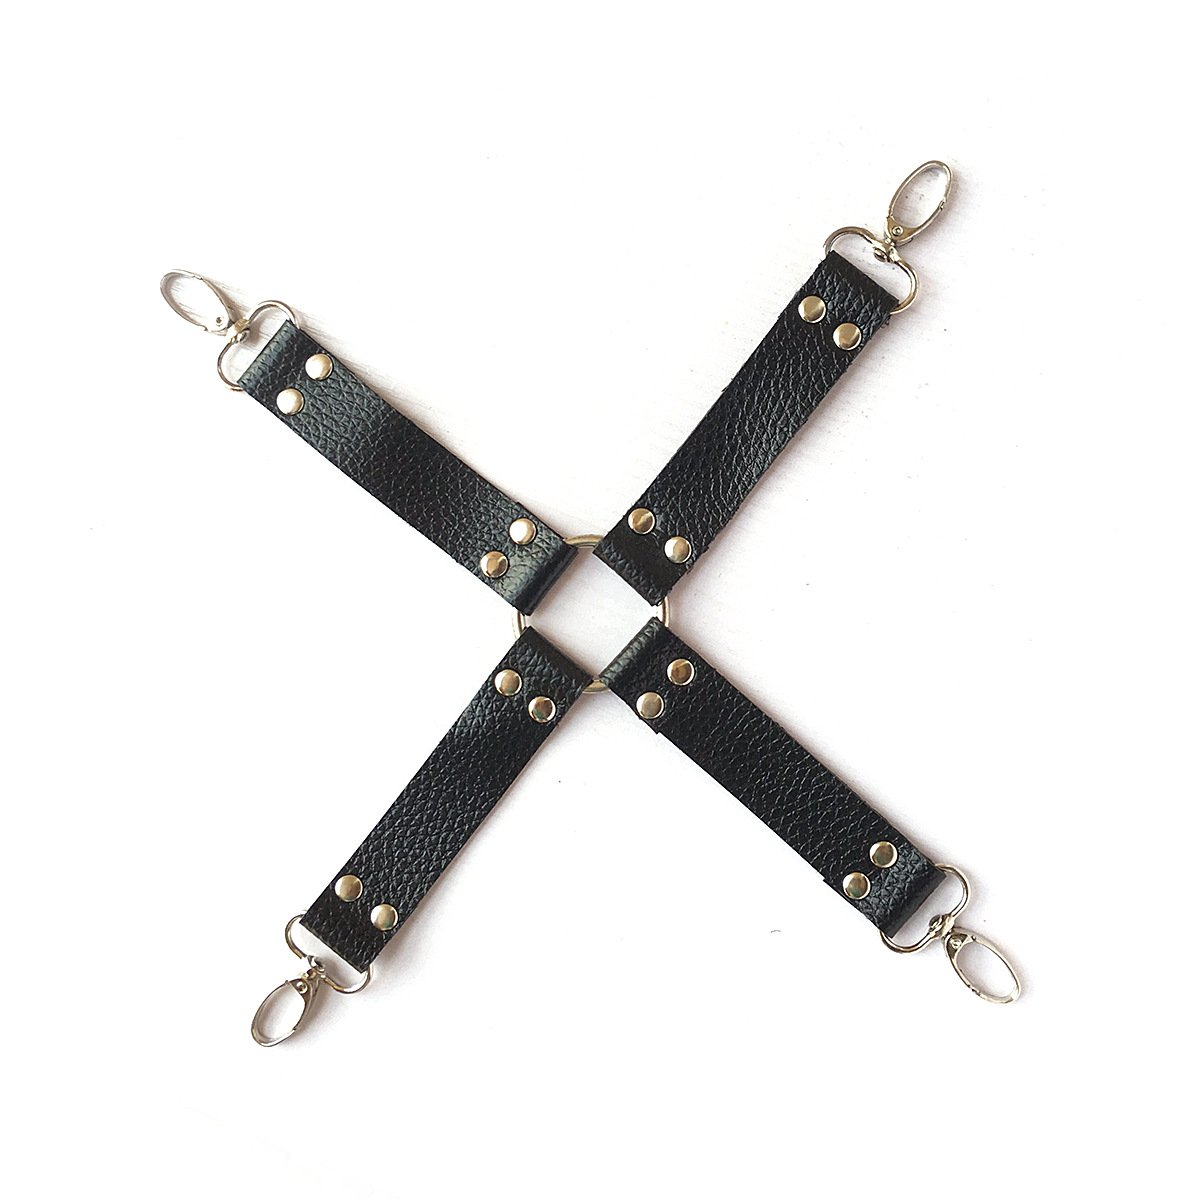 Black 10 Pcs Hands and Ankles Cuffs Premium PU Leather Adjustable Bed Kits